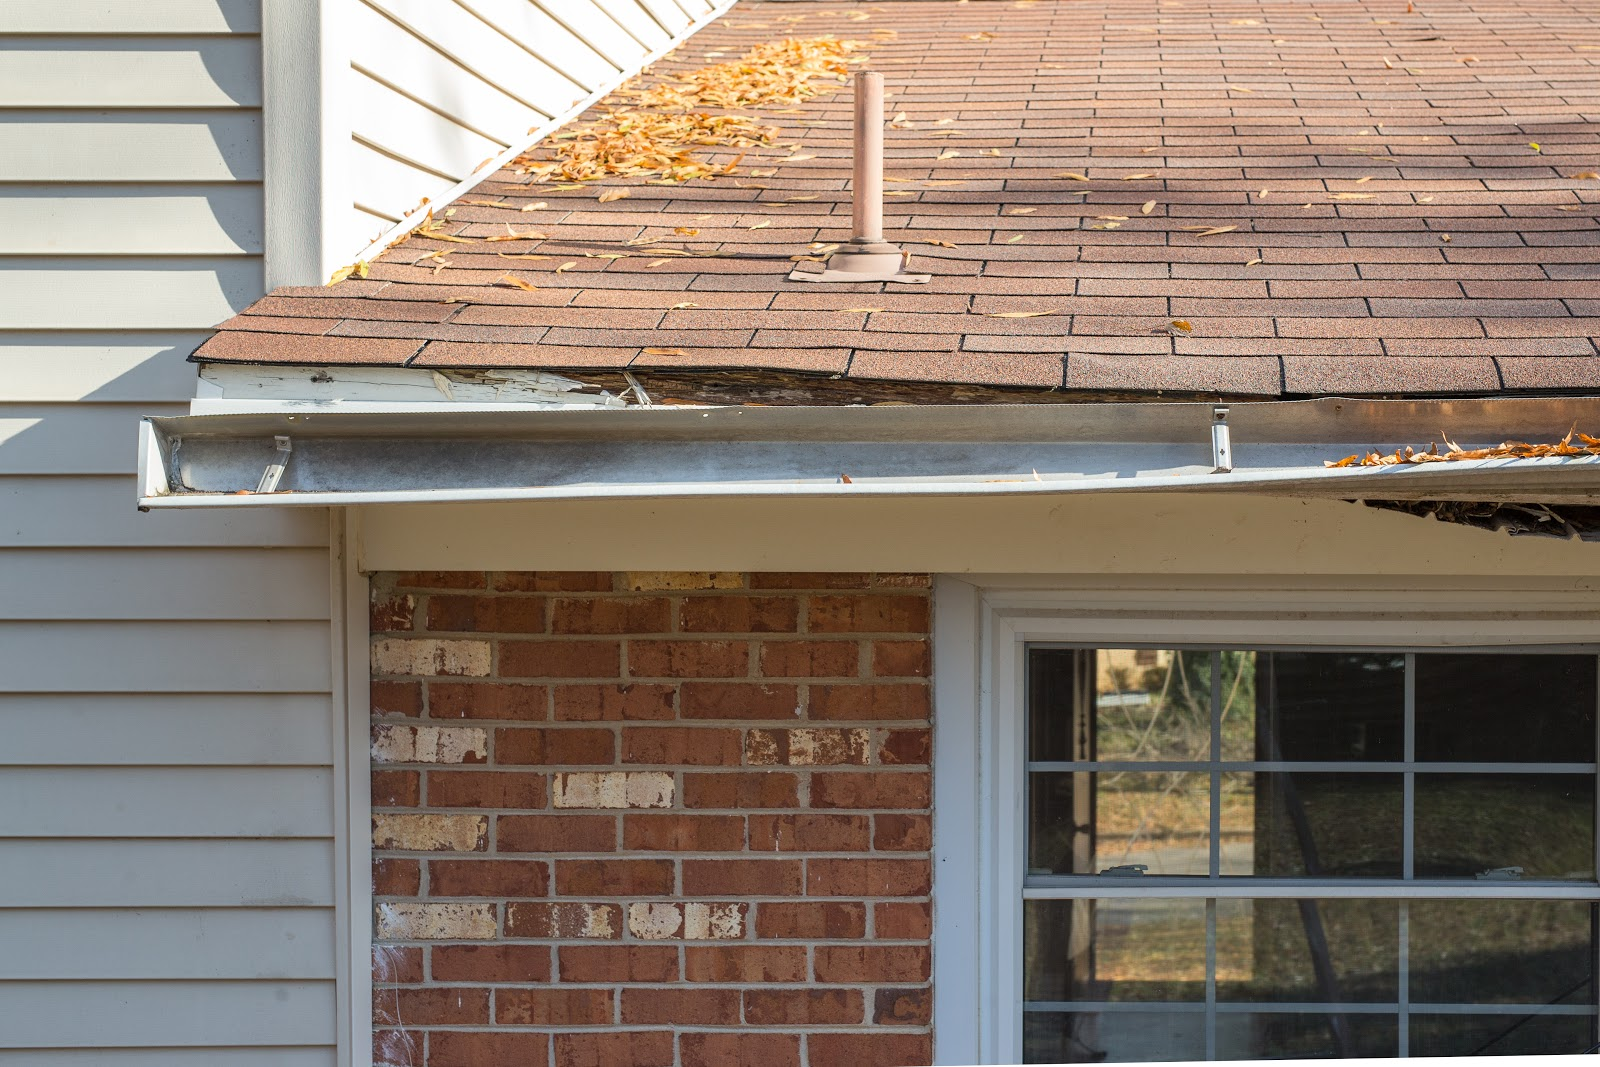 broken gutter- poor roof water drainage